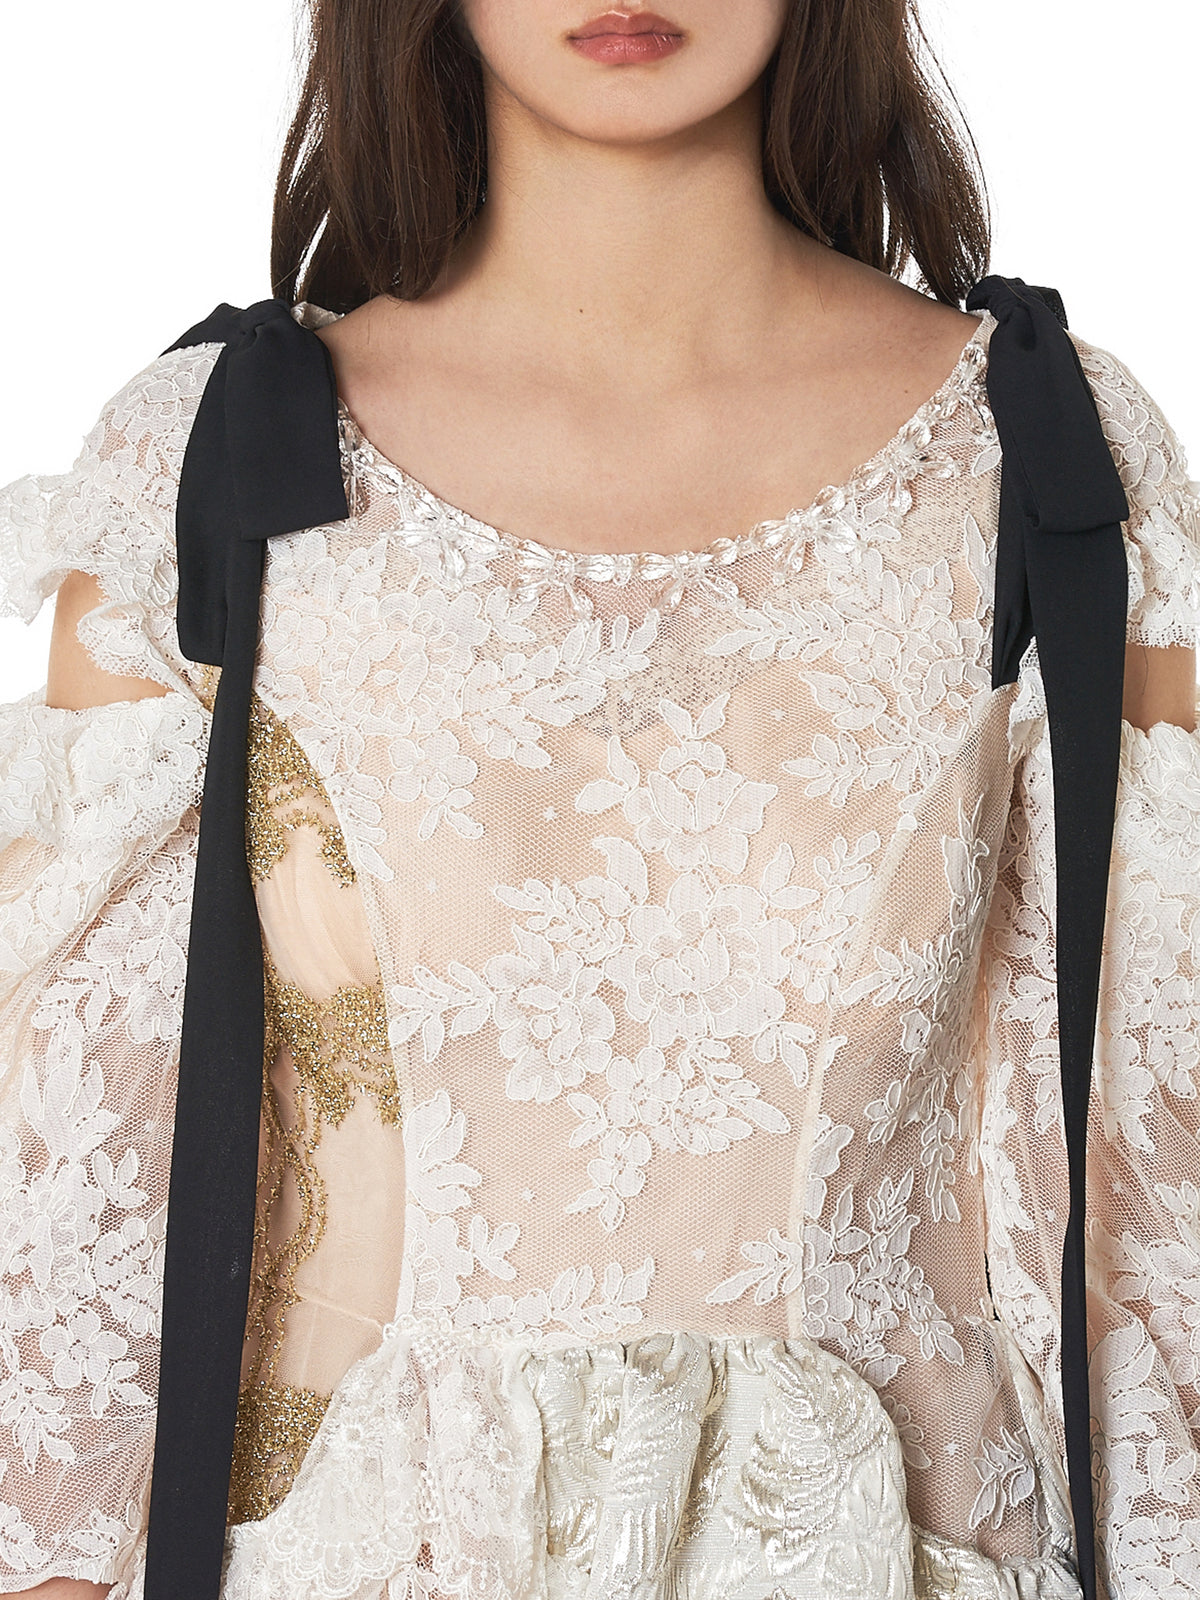 Simone Rocha Ribbon Dress - Hlorenzo Detail 2